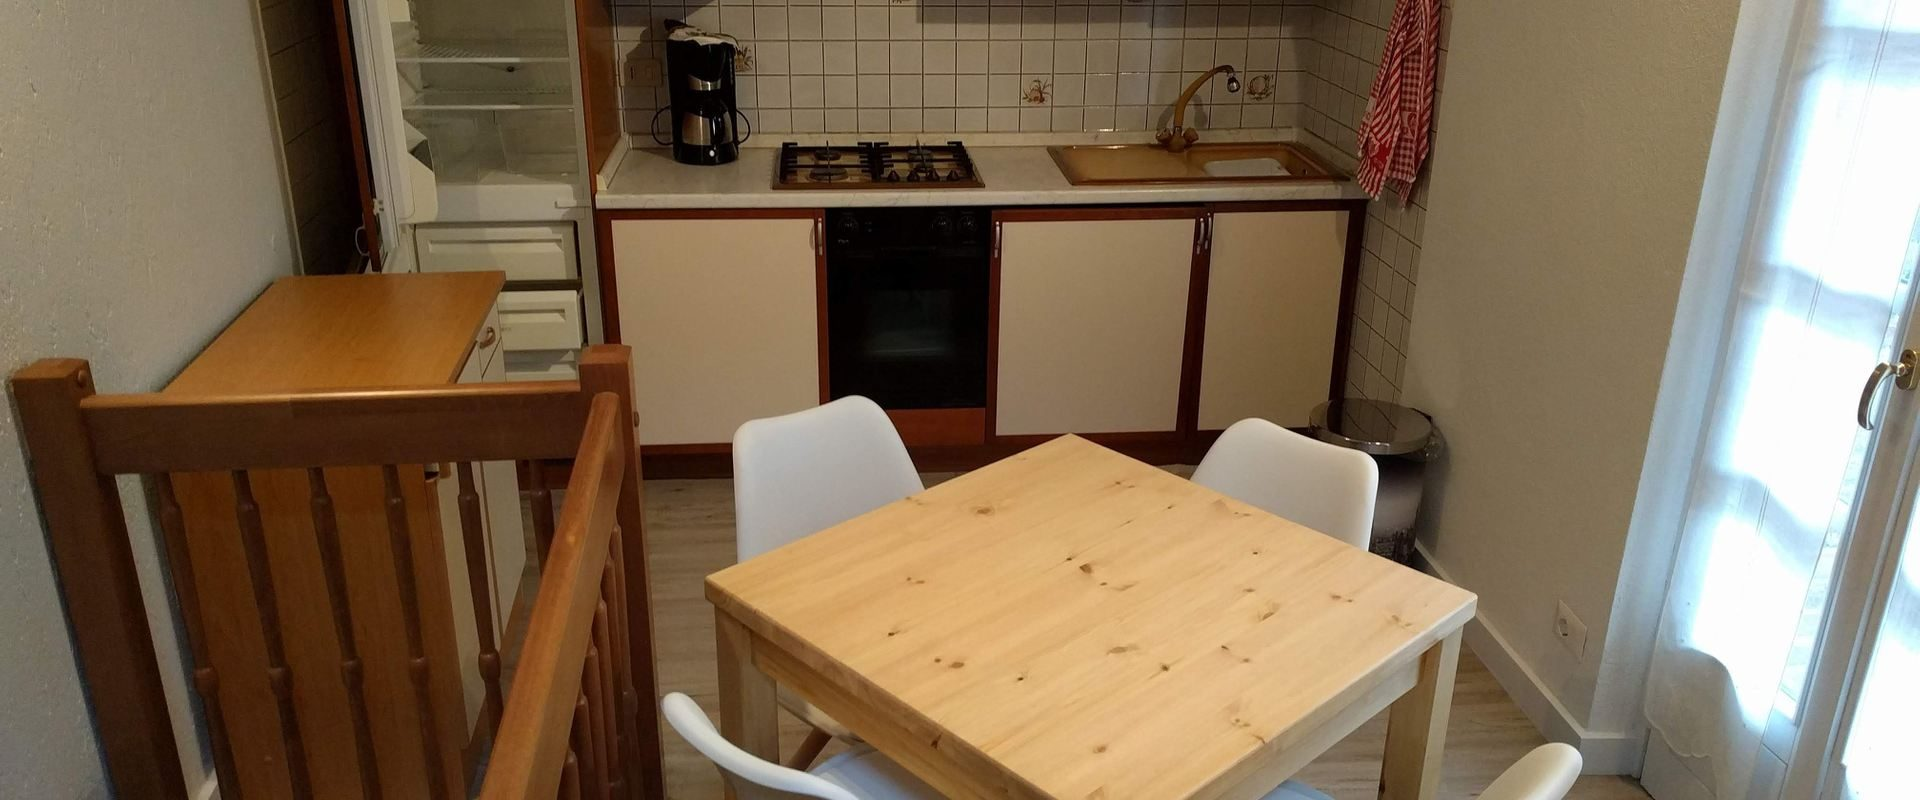 Old Village – Apartment in alpine style recently renovated on 4 floors